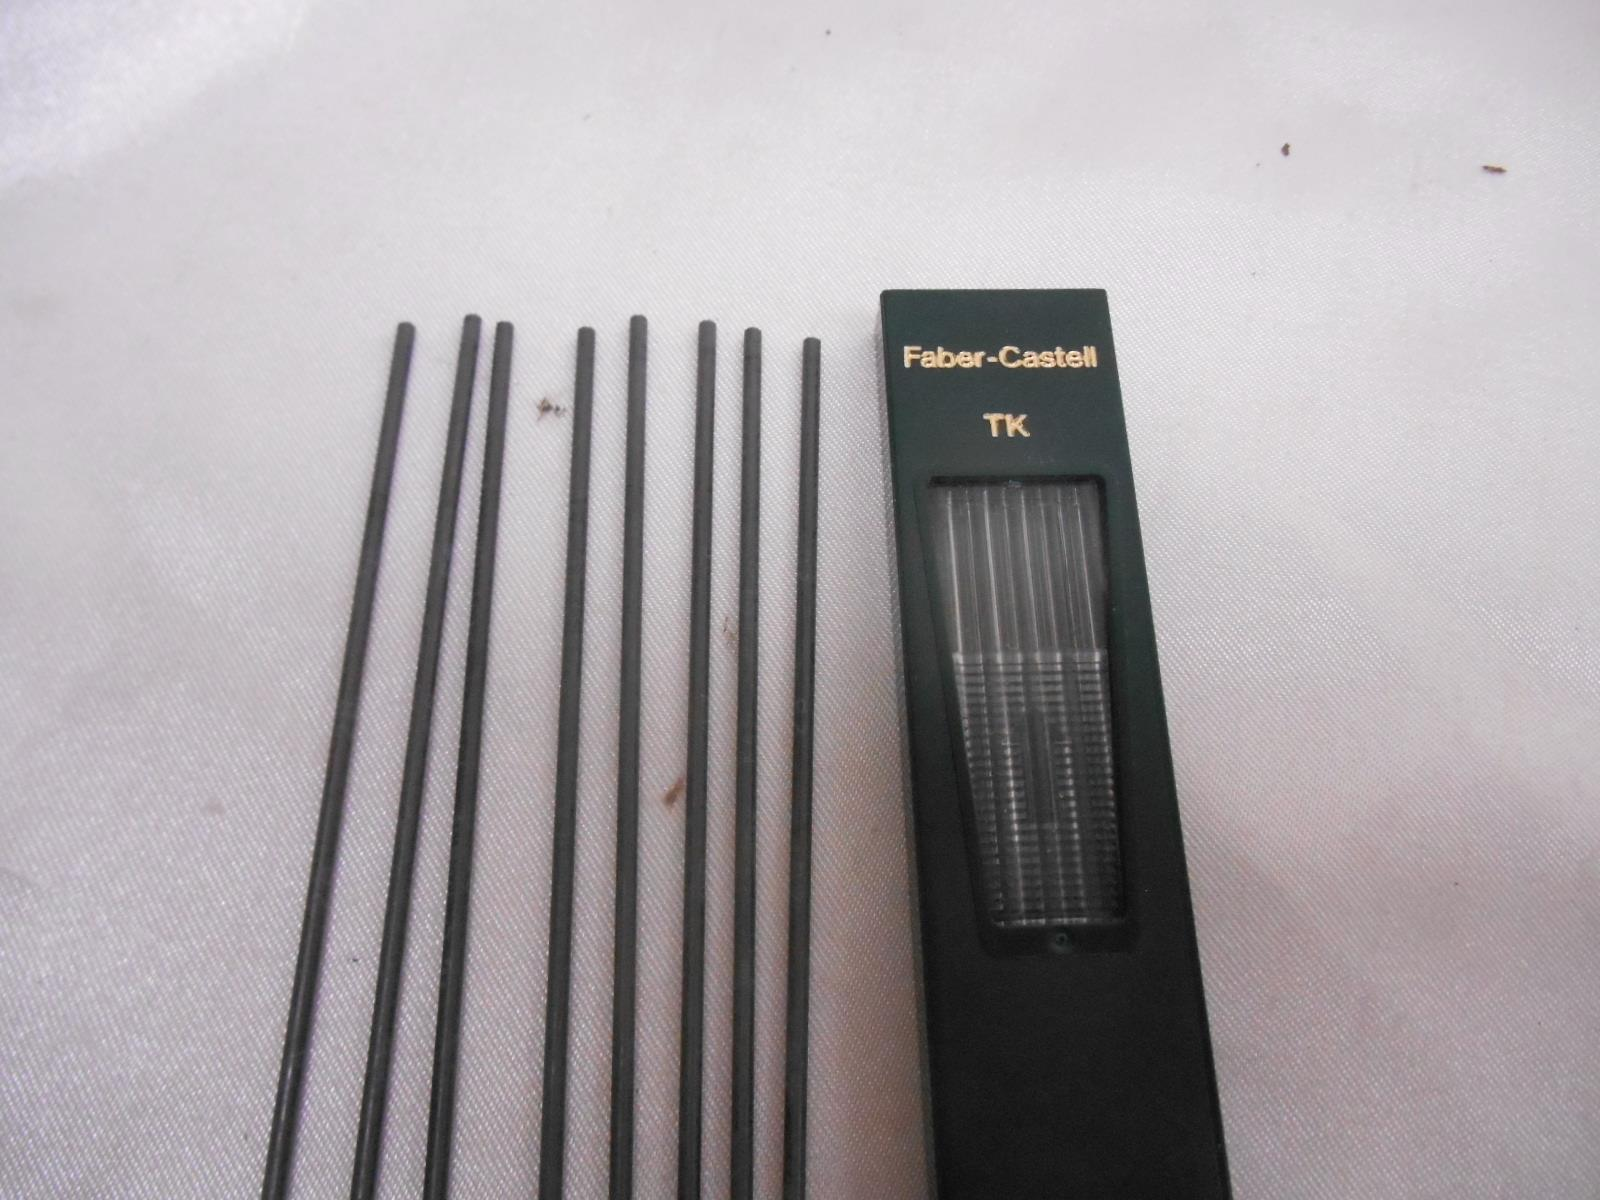 Old Vtg FABER-CASTELL MECHANICAL PENCIL MINEN LEADS #90712B Made Germany LOT 8